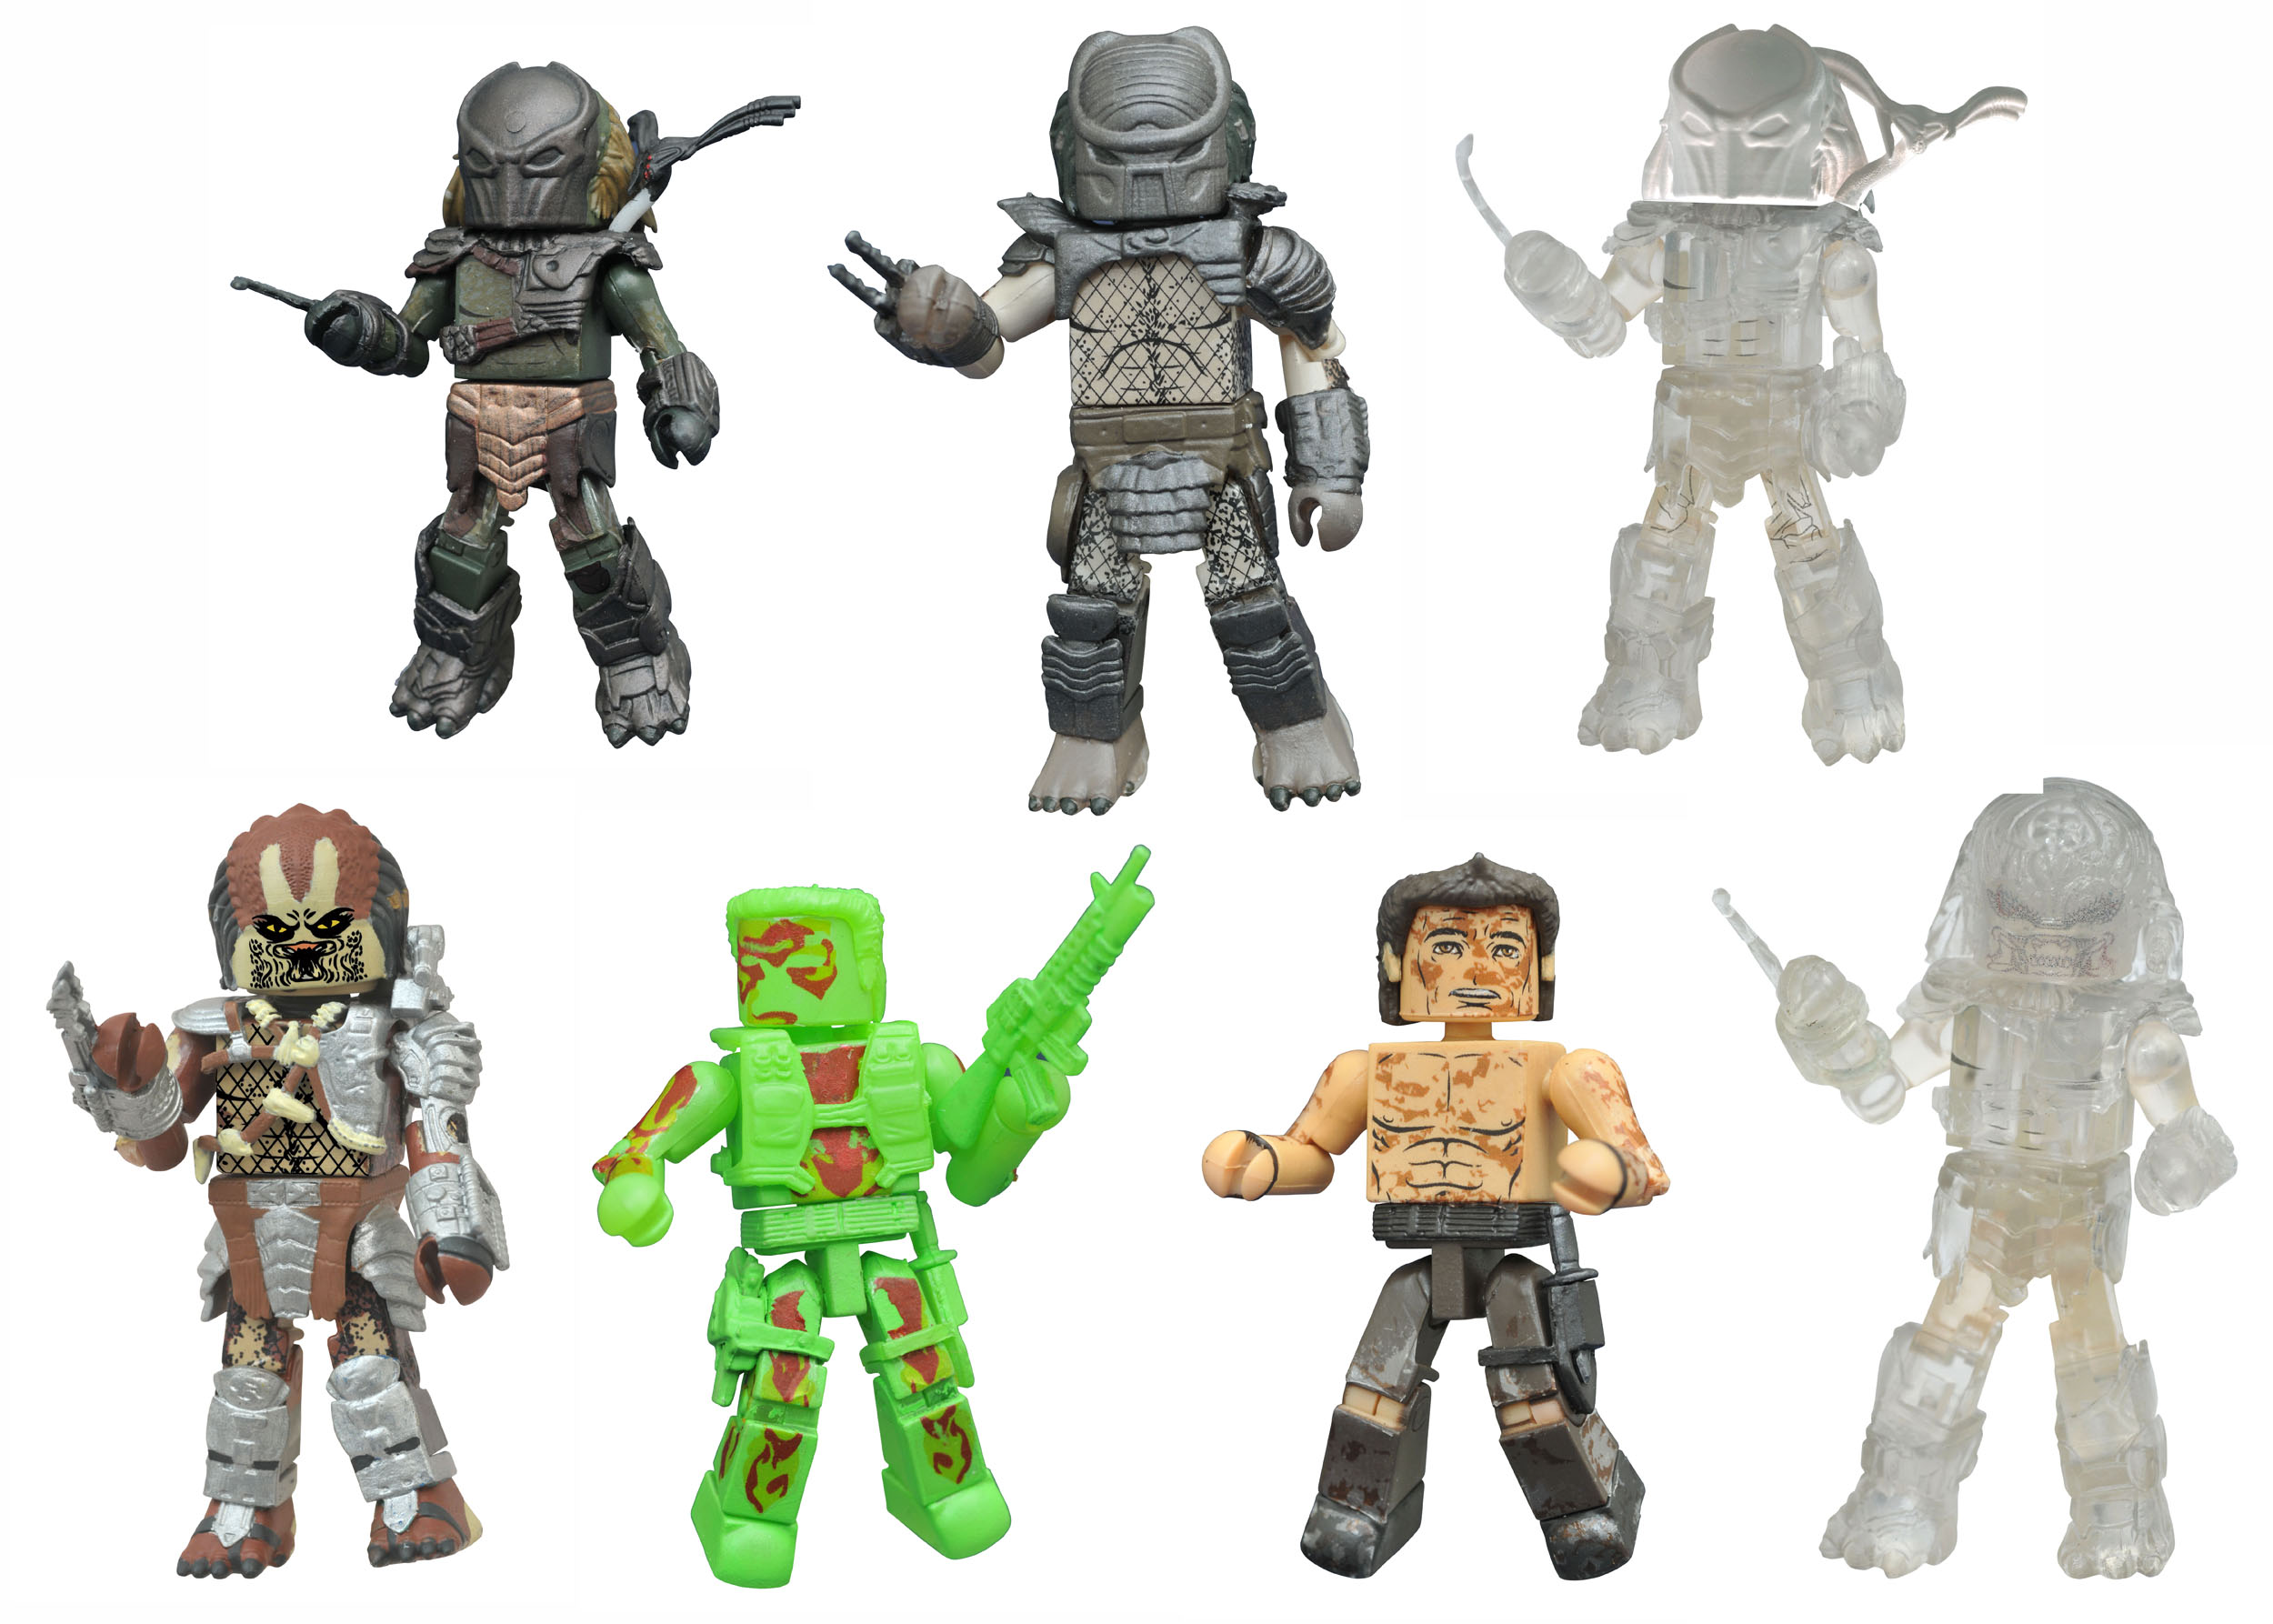 Lord Of The Rings Minimates Series